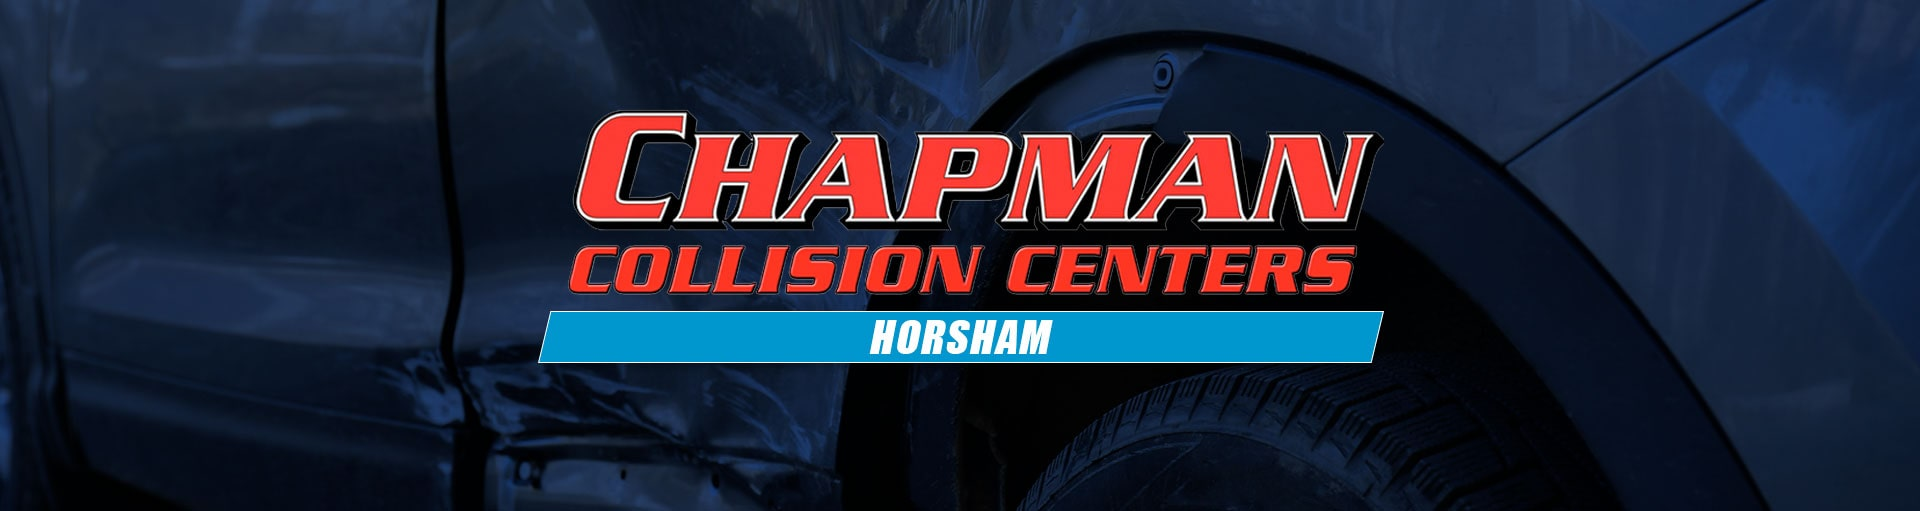 Chapman Horsham Collision Center